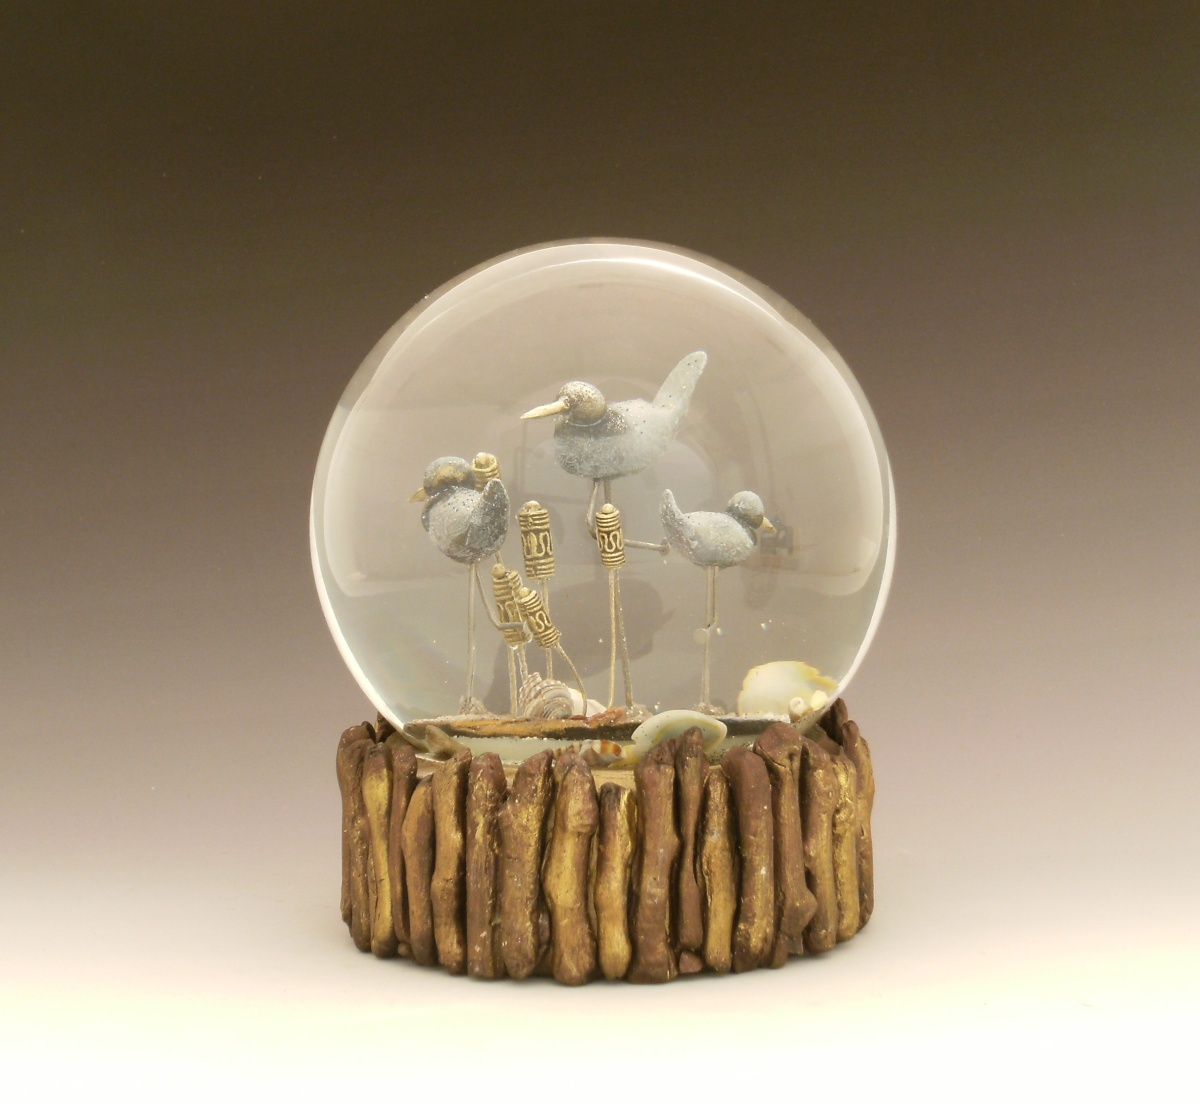 Shore Enough one of a kind waterglobe/snow globe, Camryn Forrest Designs 2014